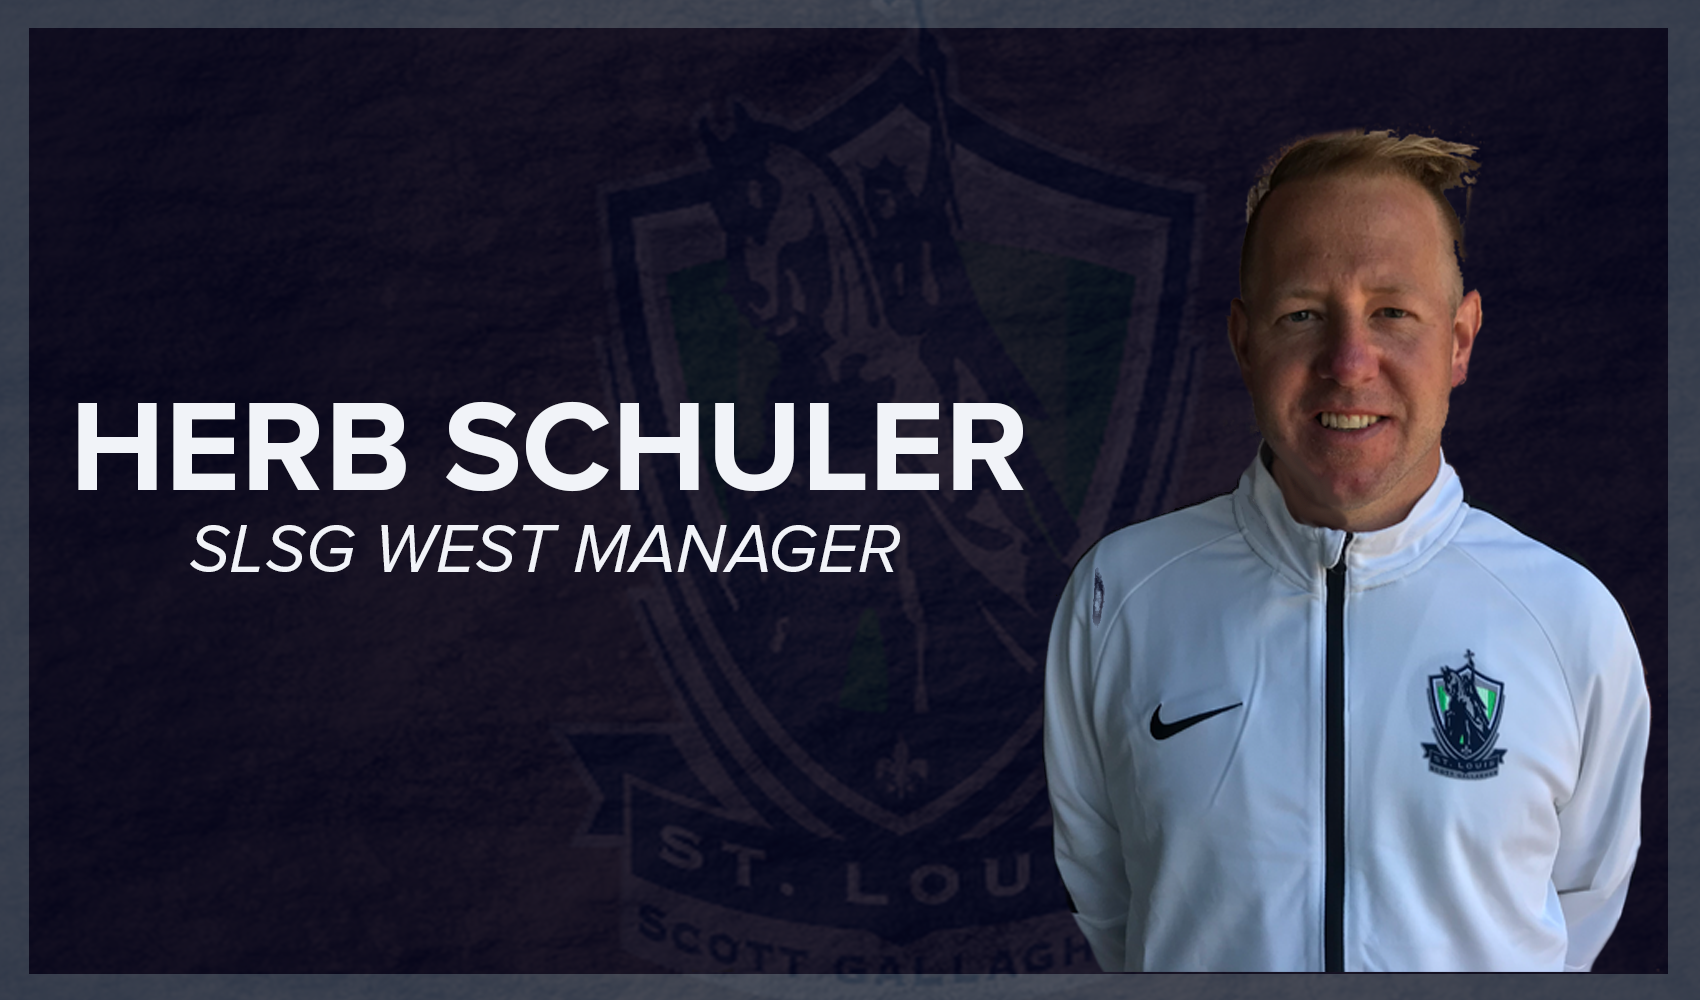 SLSG Appoints Herb Schuler as SLSG West Manager